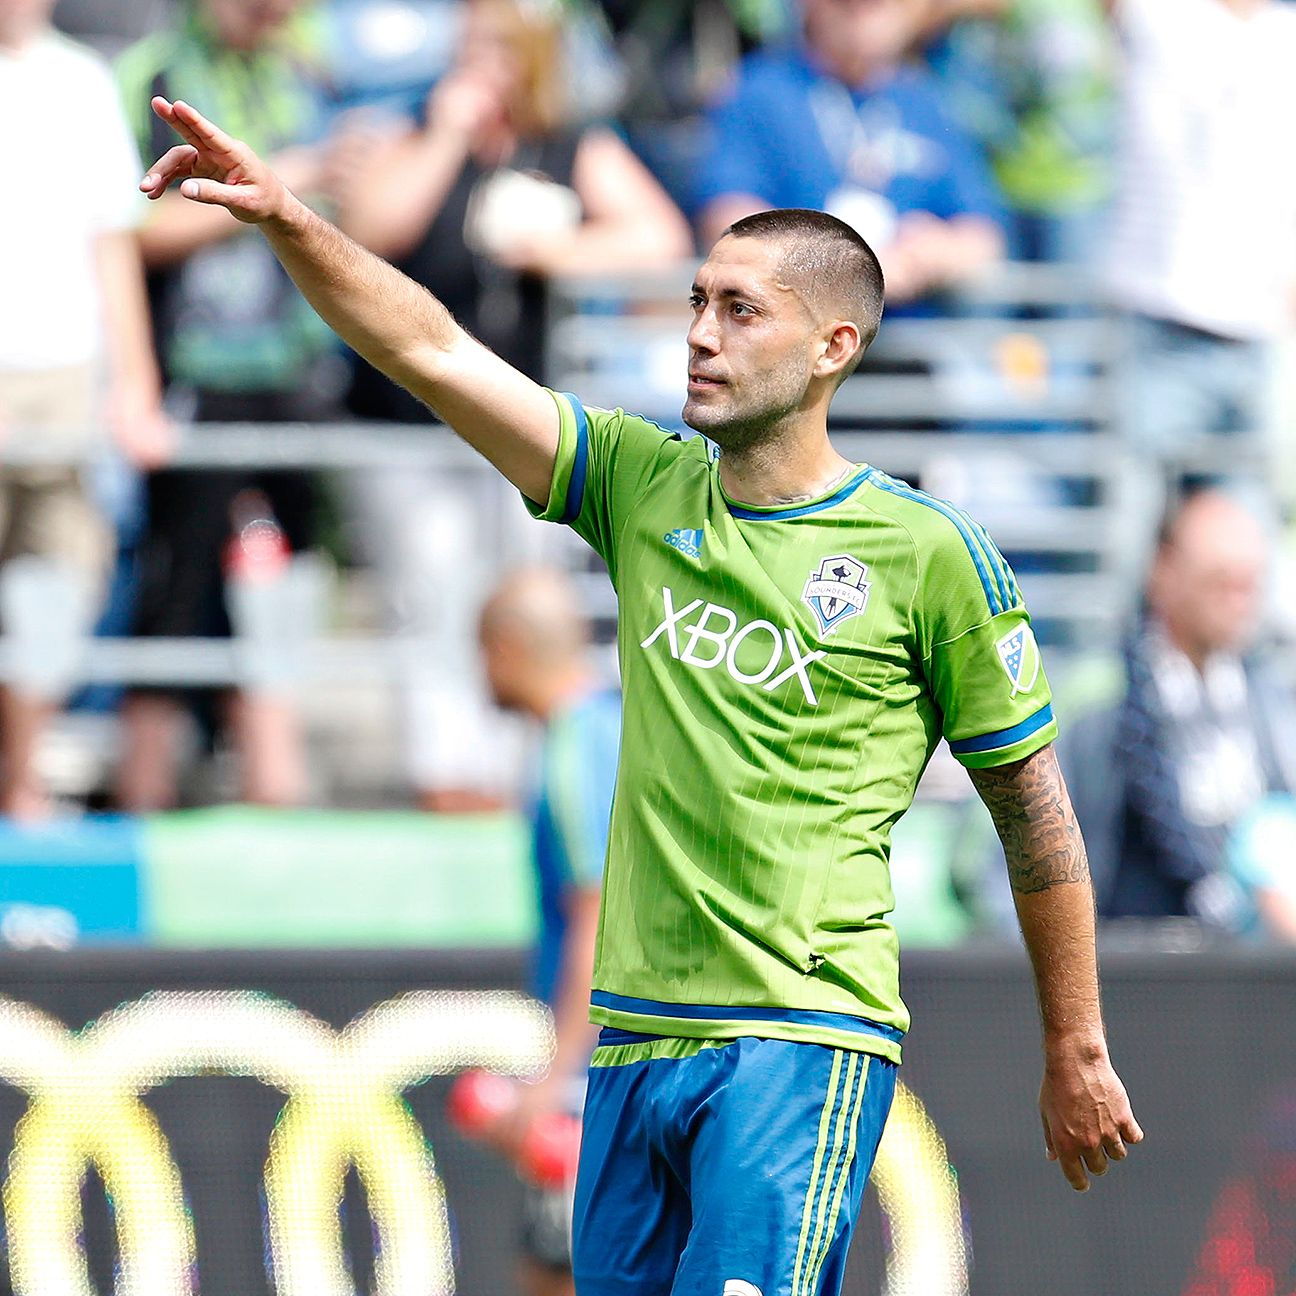 Clint Dempsey and the Seattle Sounders hope to make history becoming MLS' first winner of the CCL.